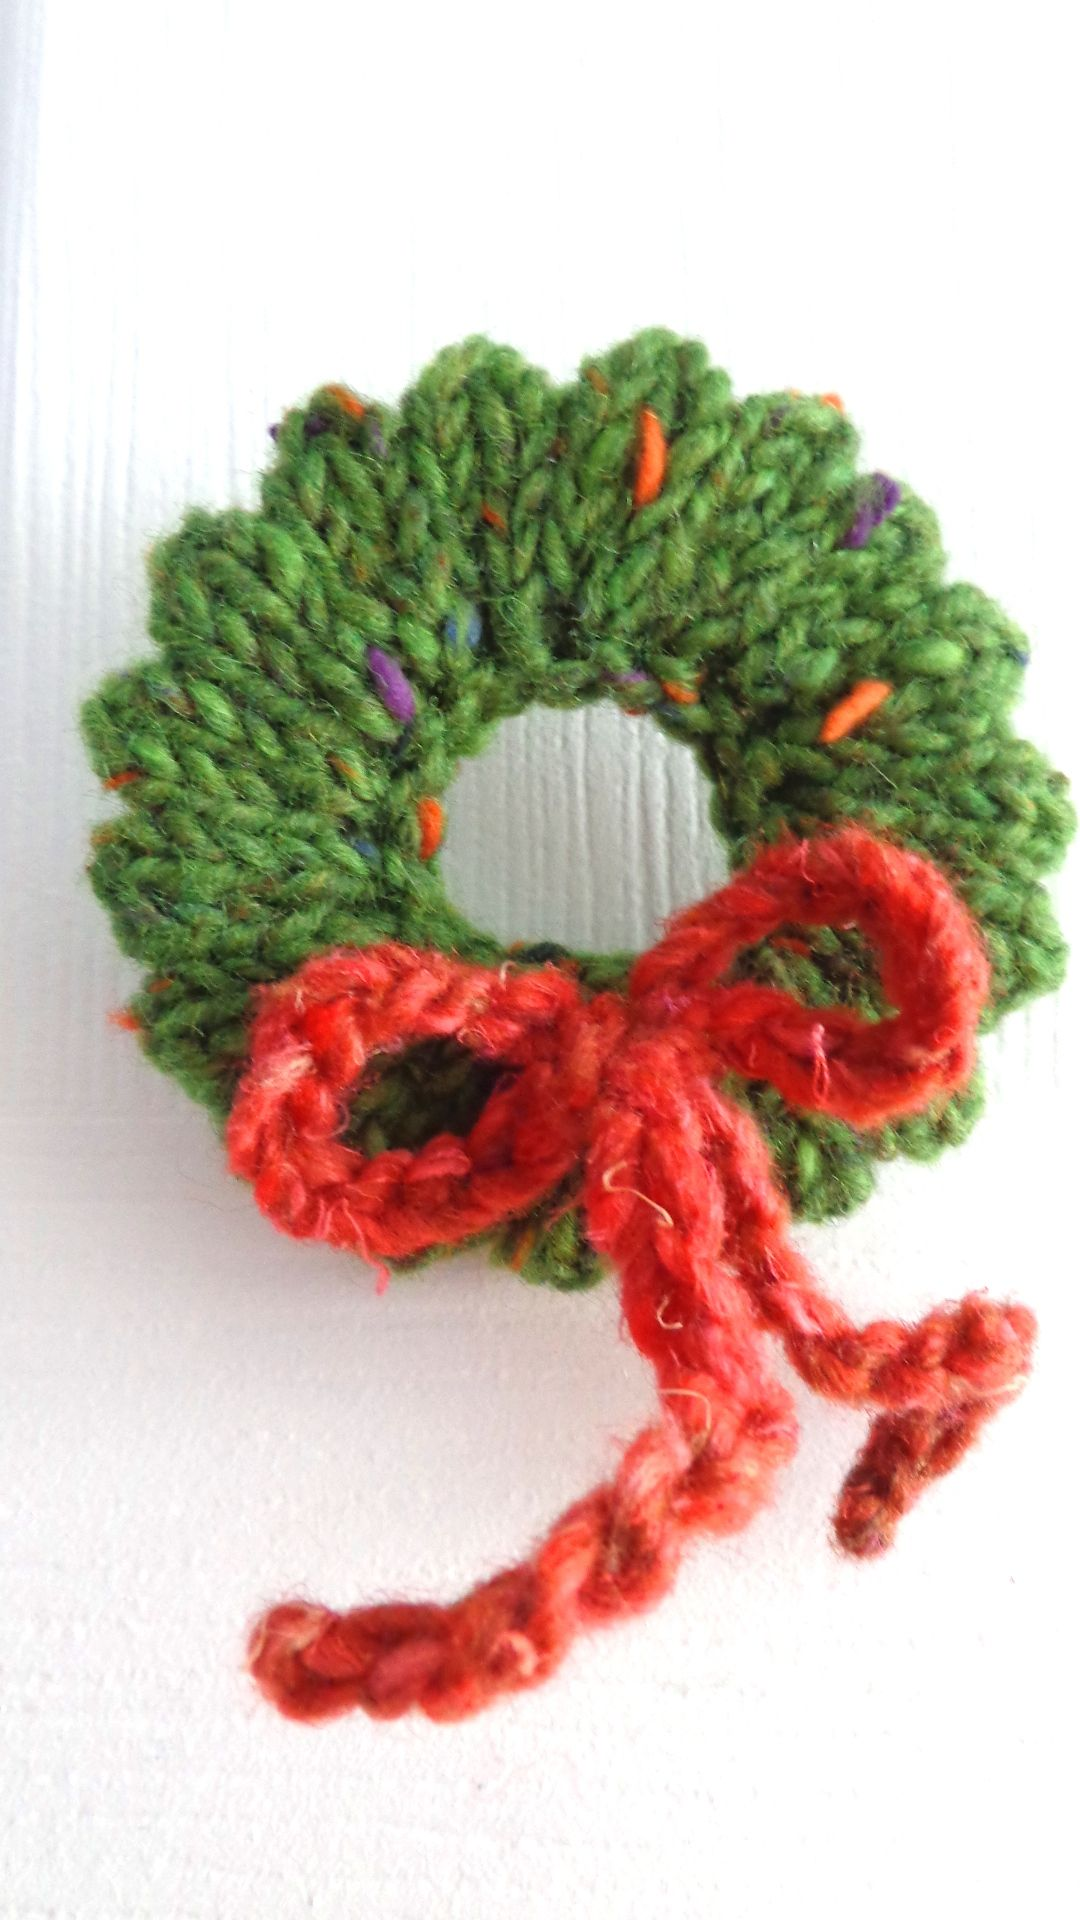 Knitted mini wreath Christmas ornament - so cute, but no pattern ...